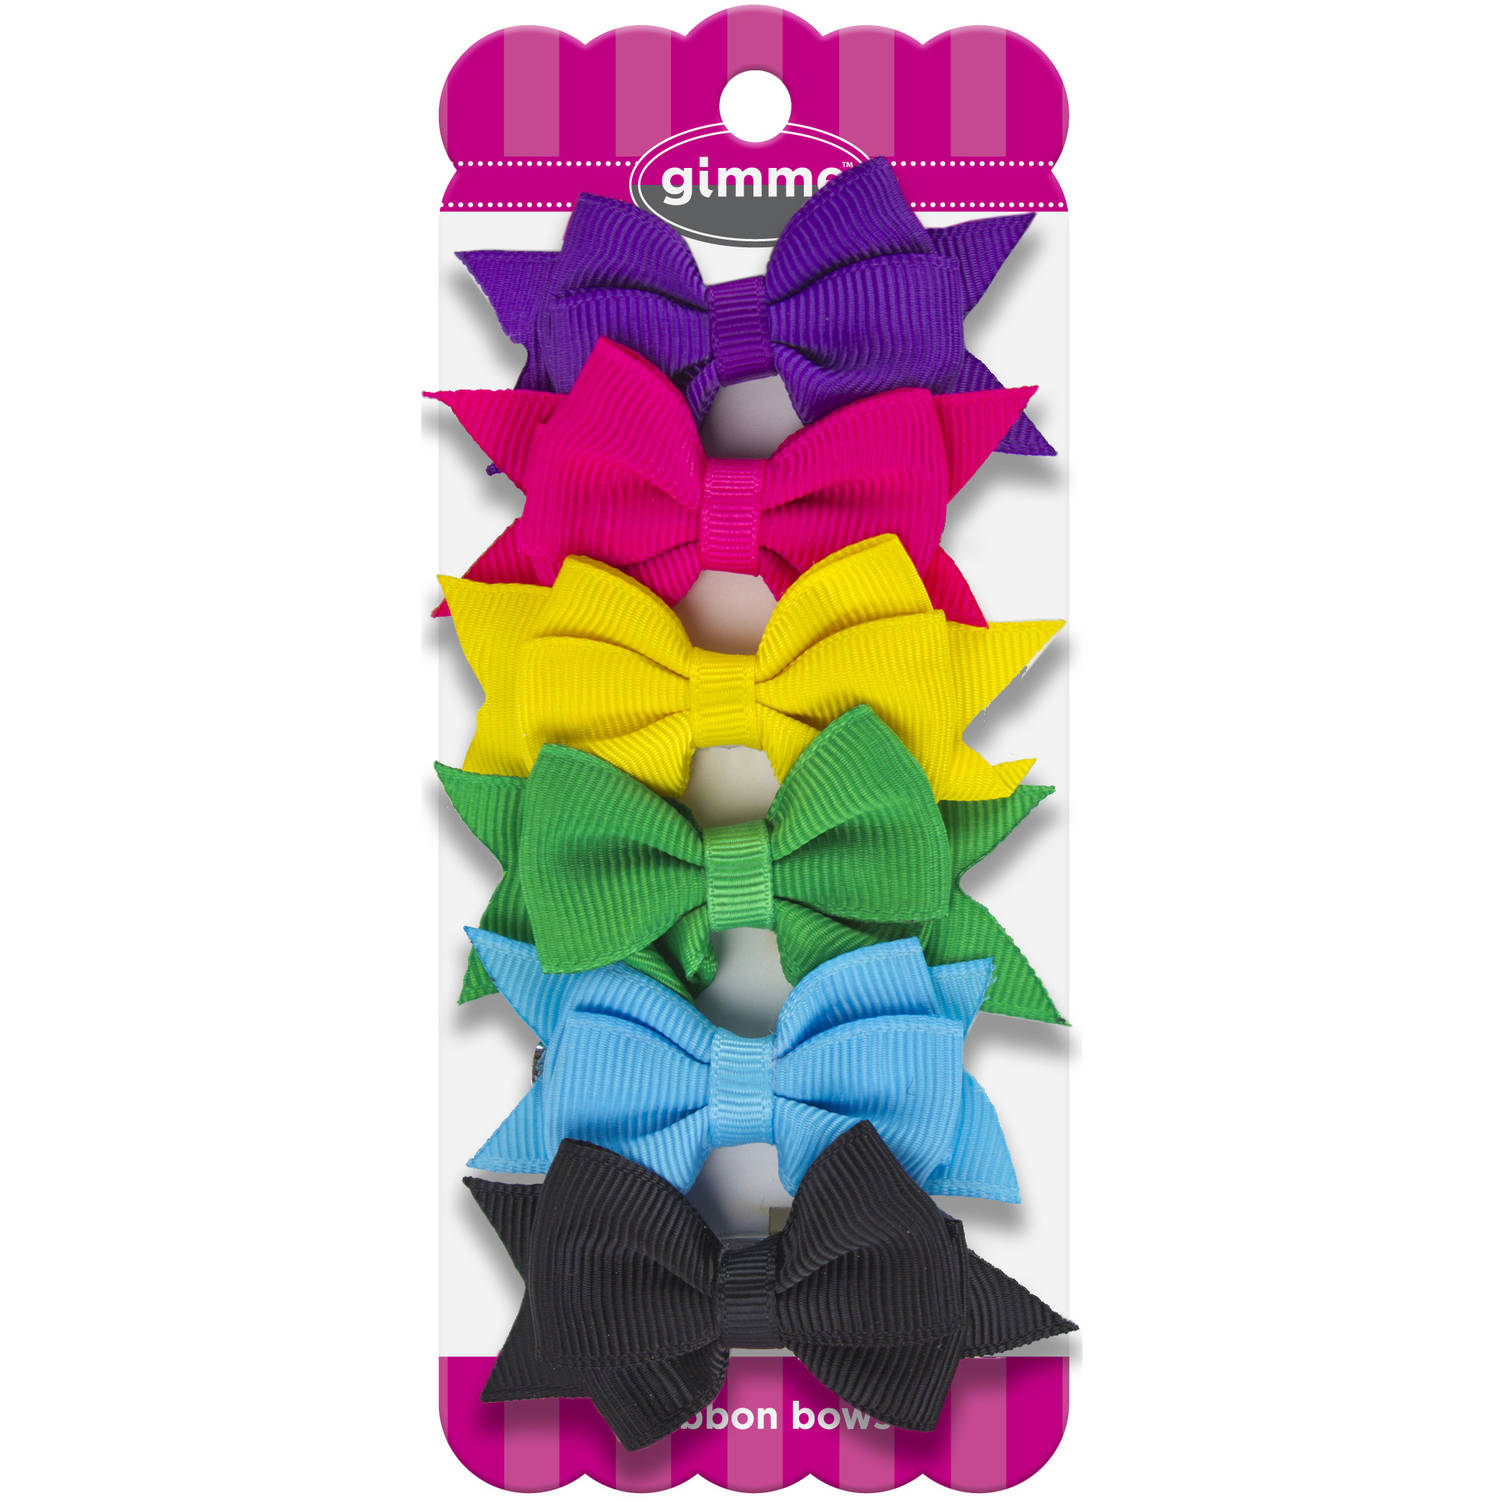 Gimme Bright Ribbon Bow Barrettes, 6 count